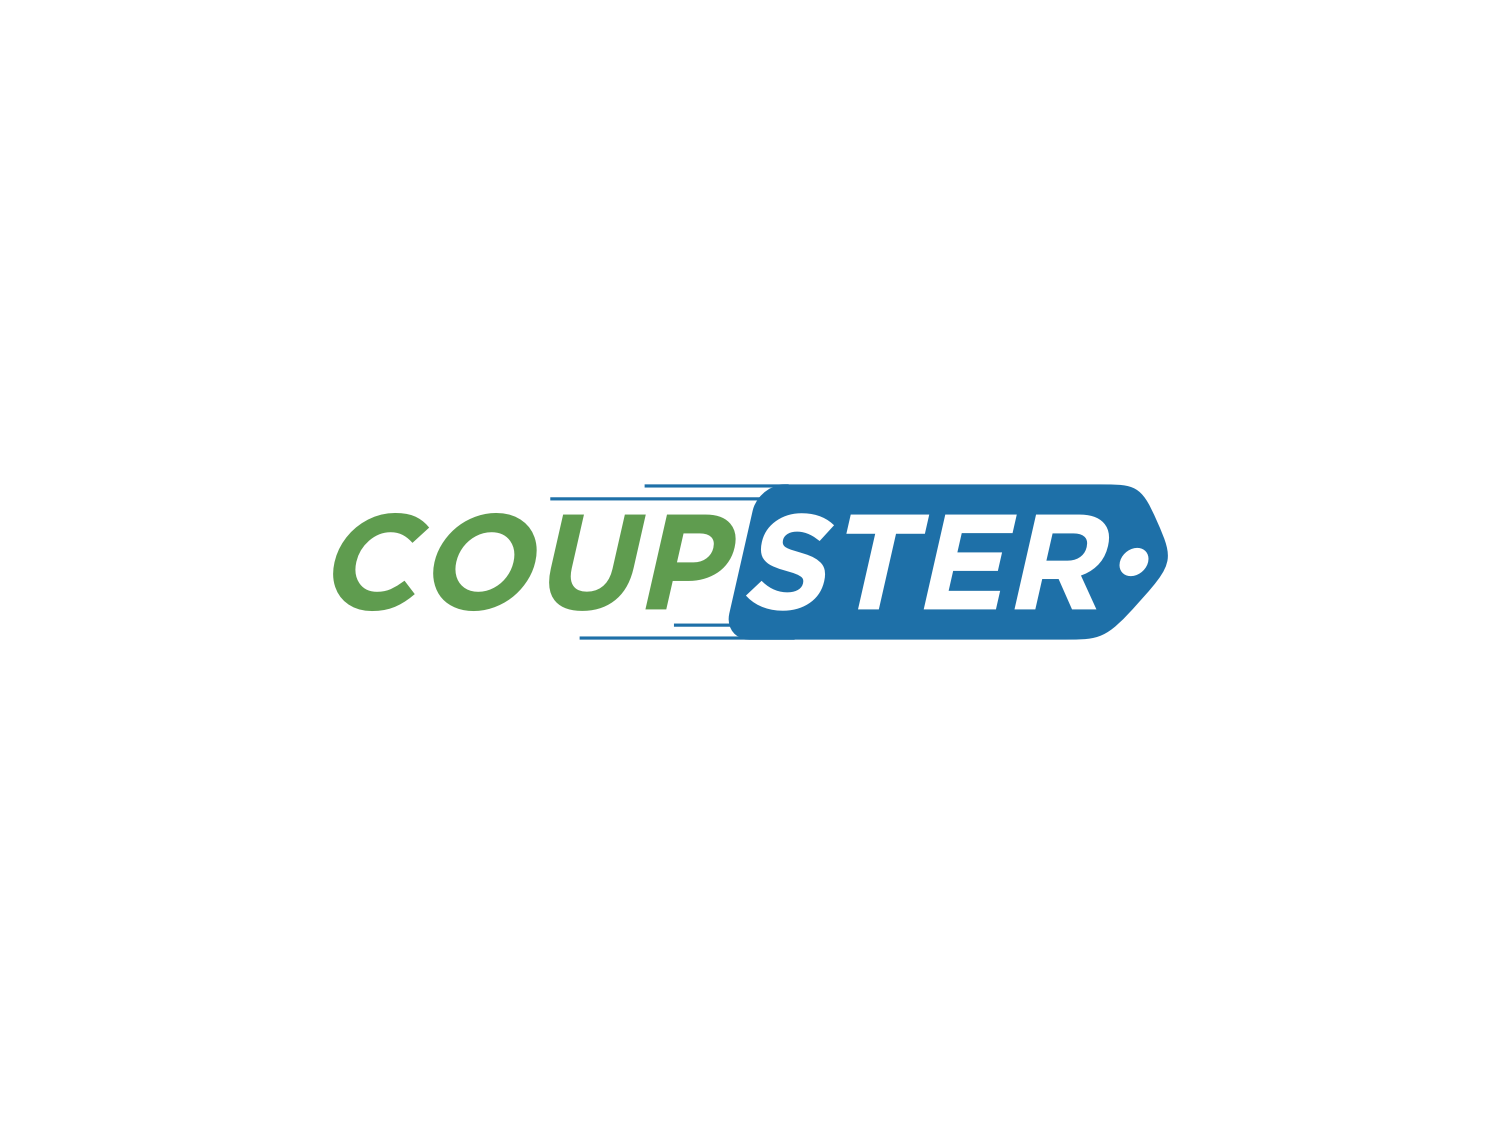 Professional Bold Coupon Logo Design For Coupster By R16 Design